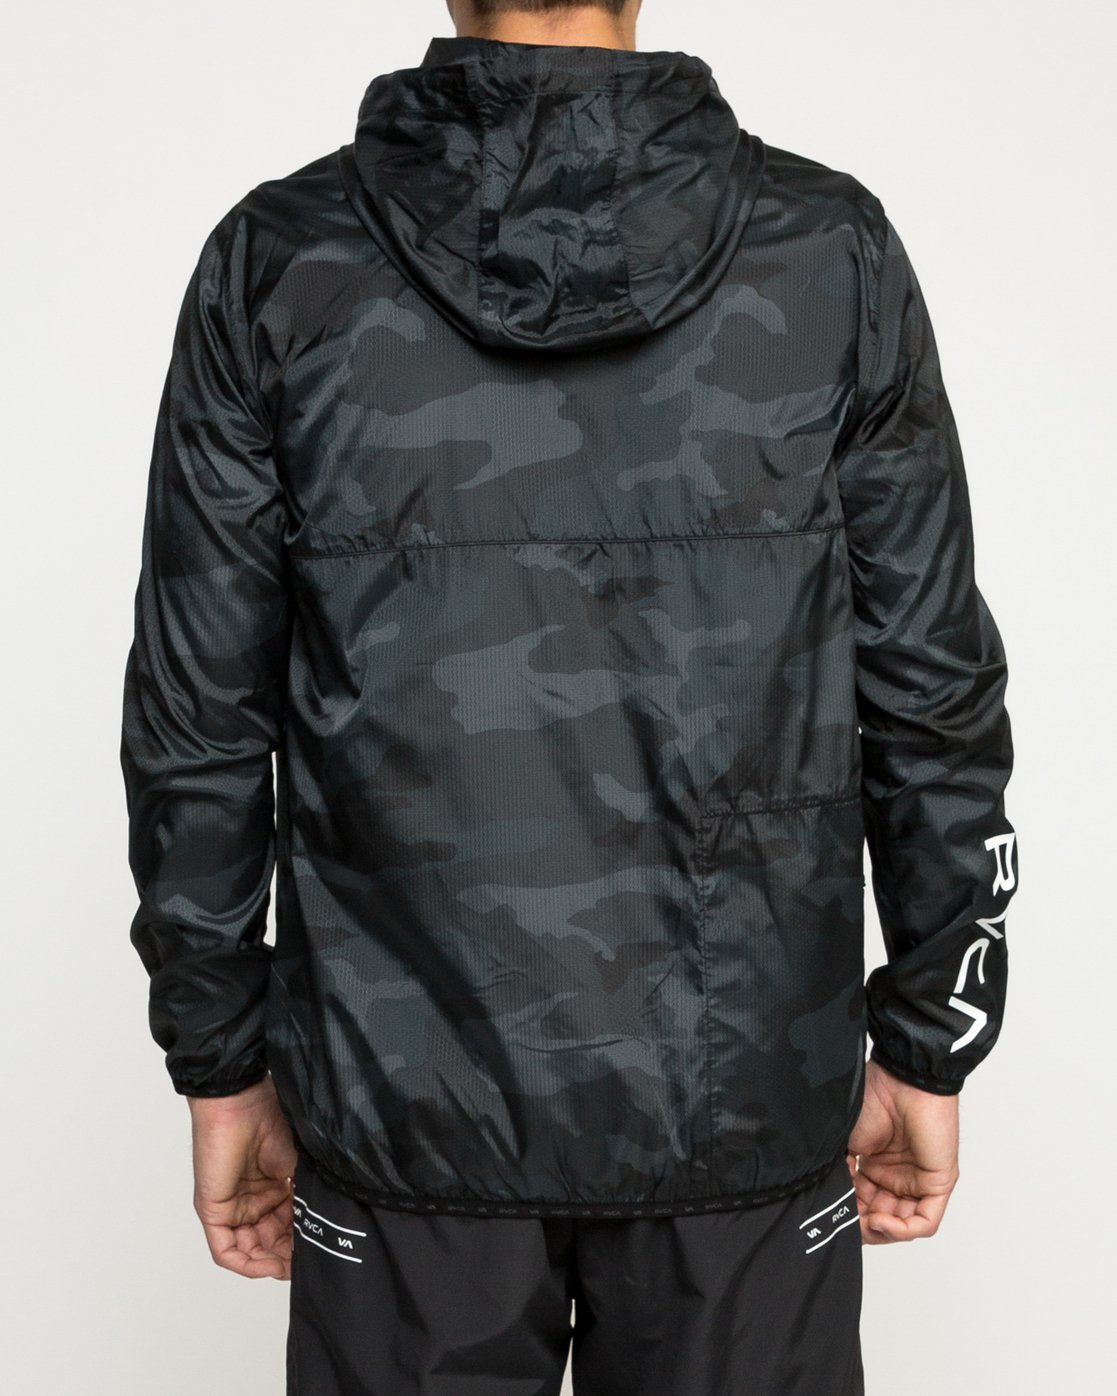 4 Hexstop Iv - Jacket for Men Camo N4JKMBRVP9 RVCA